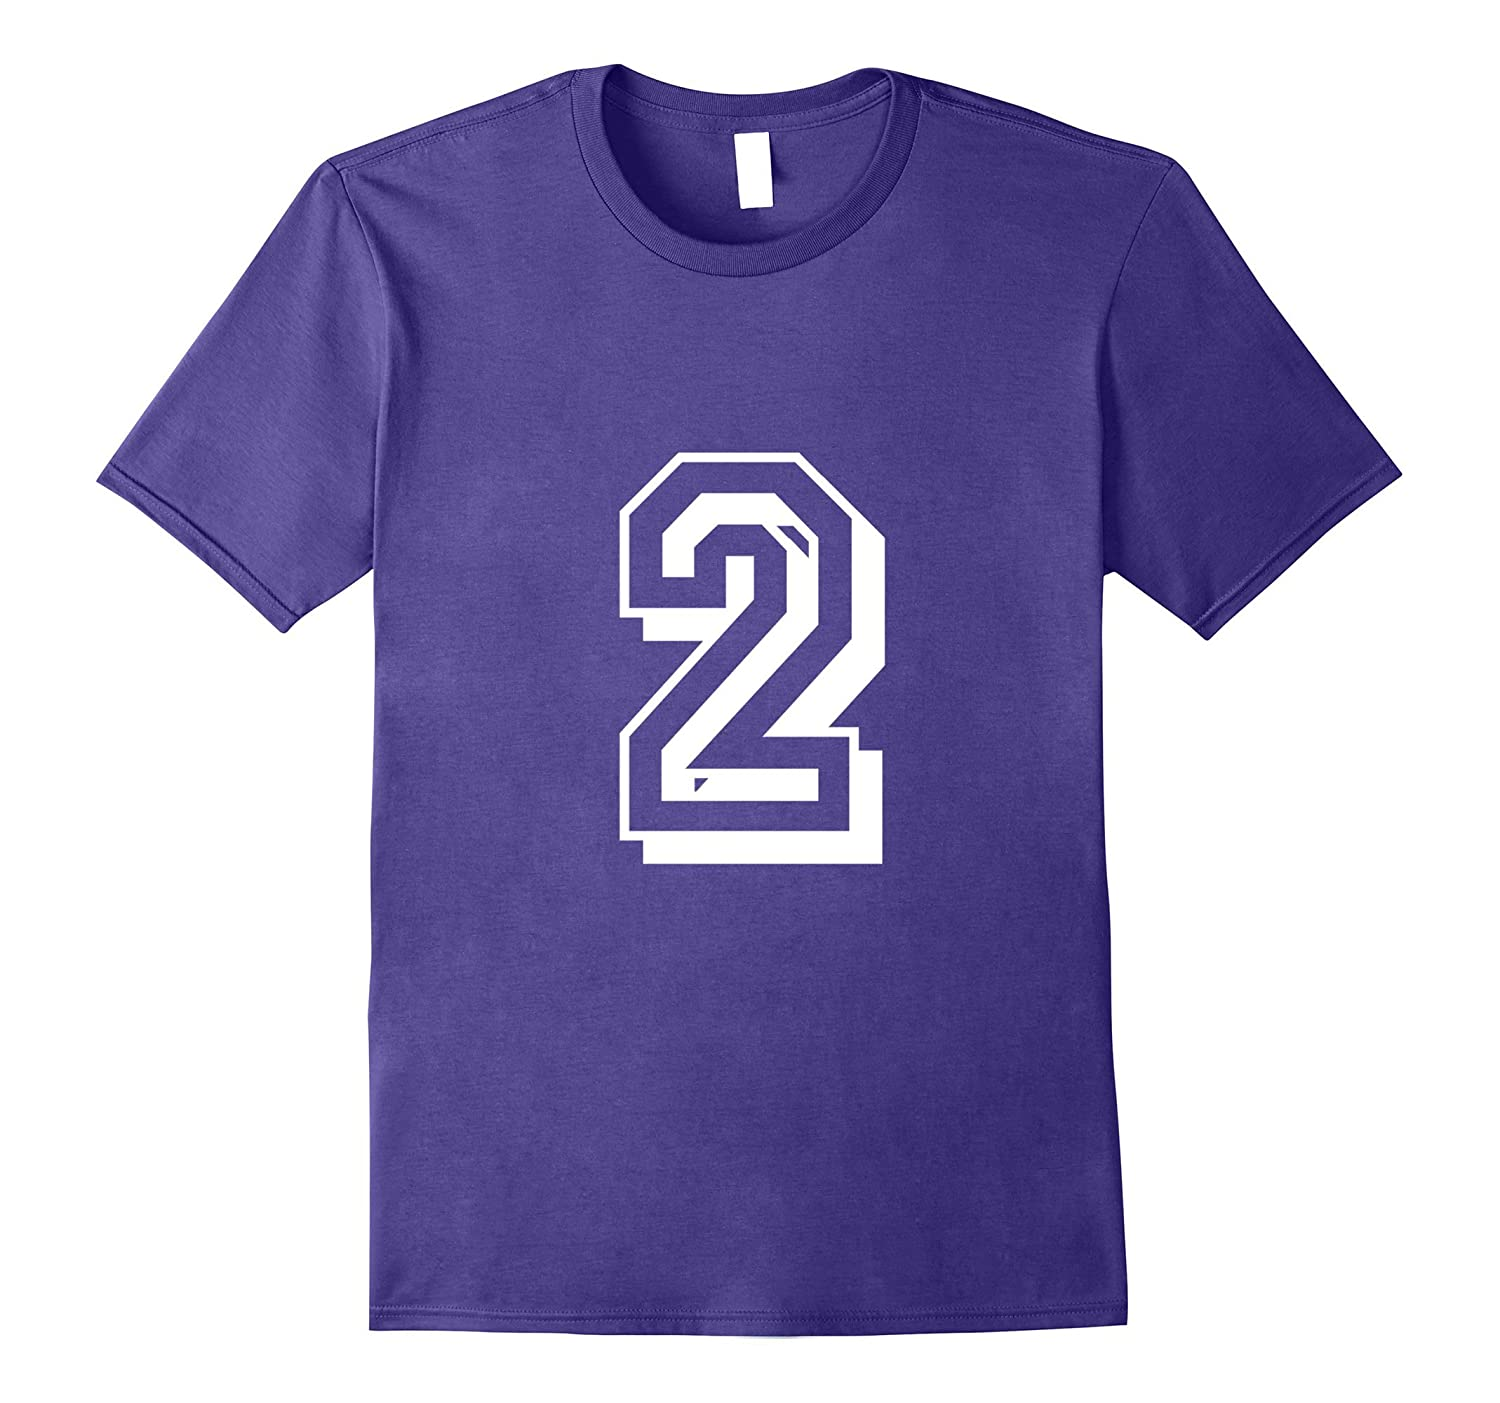 2 Number 2 Sports Jersey T-shirt My Favorite Player 2-Vaci